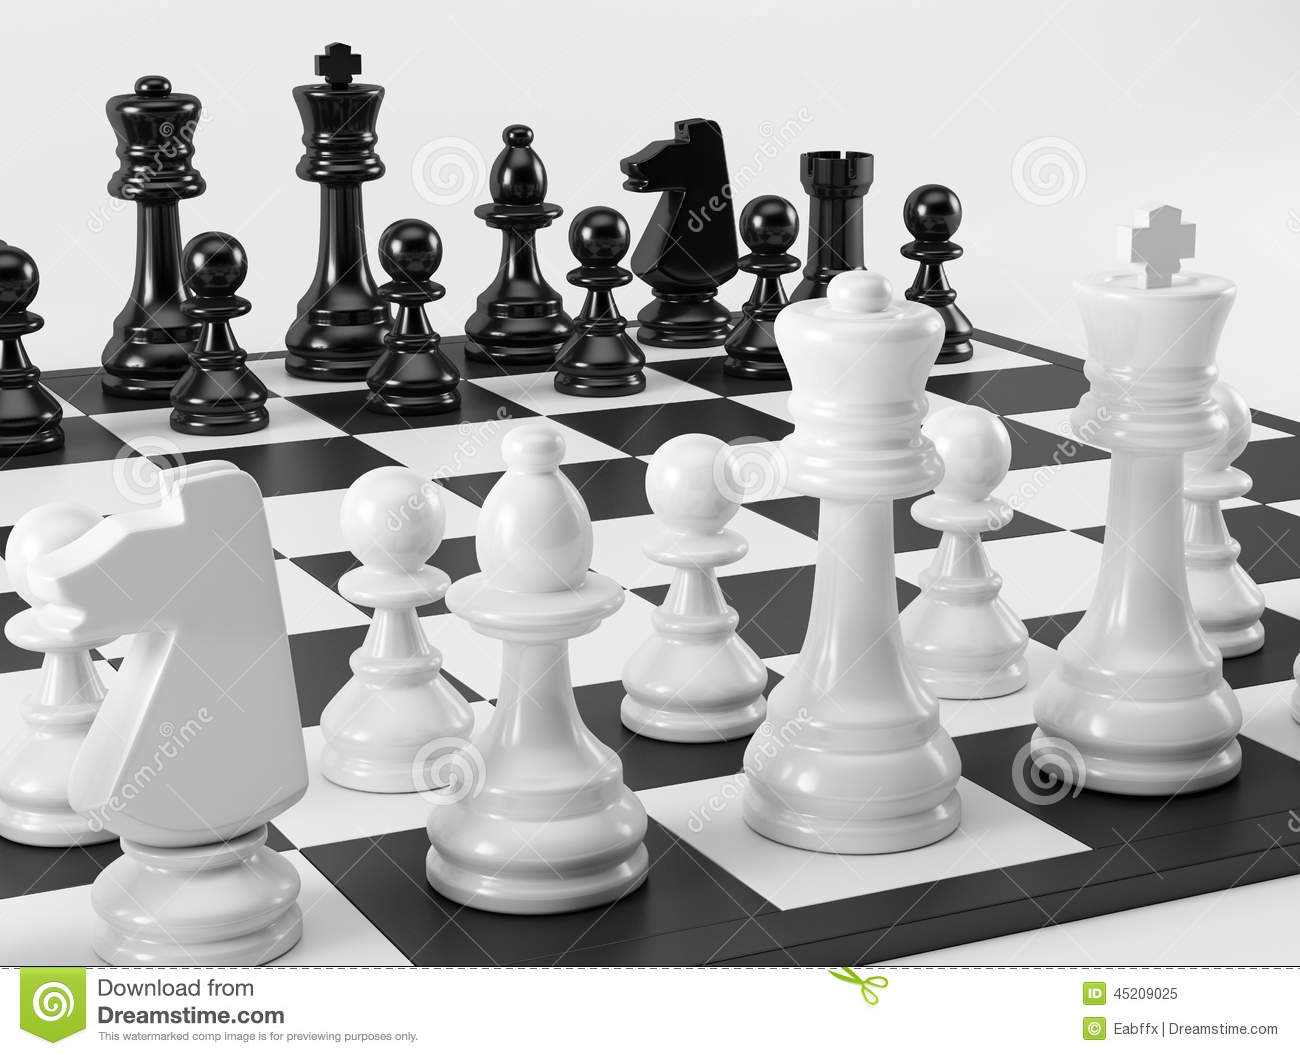 free illustration chessboard render - photo #21